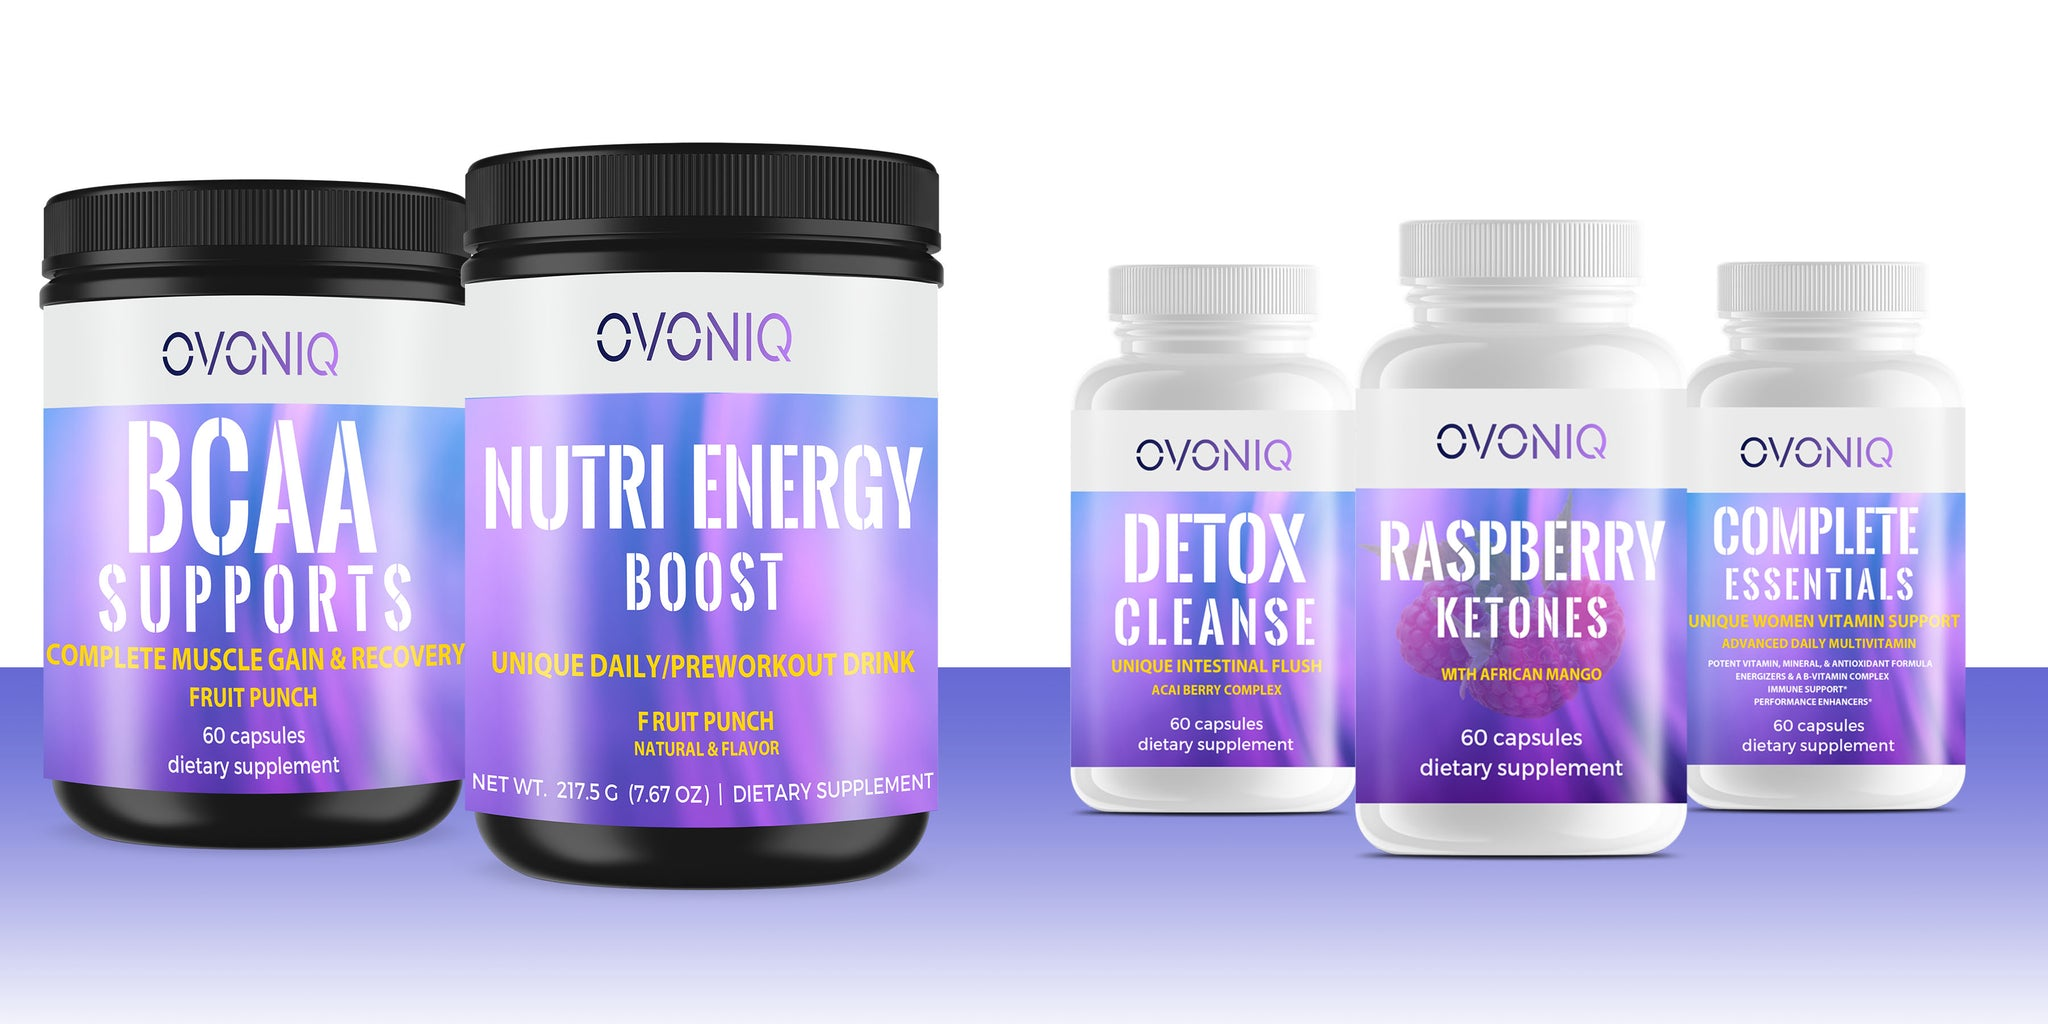 OVONIQ Weight Loss and Keto jumpstart